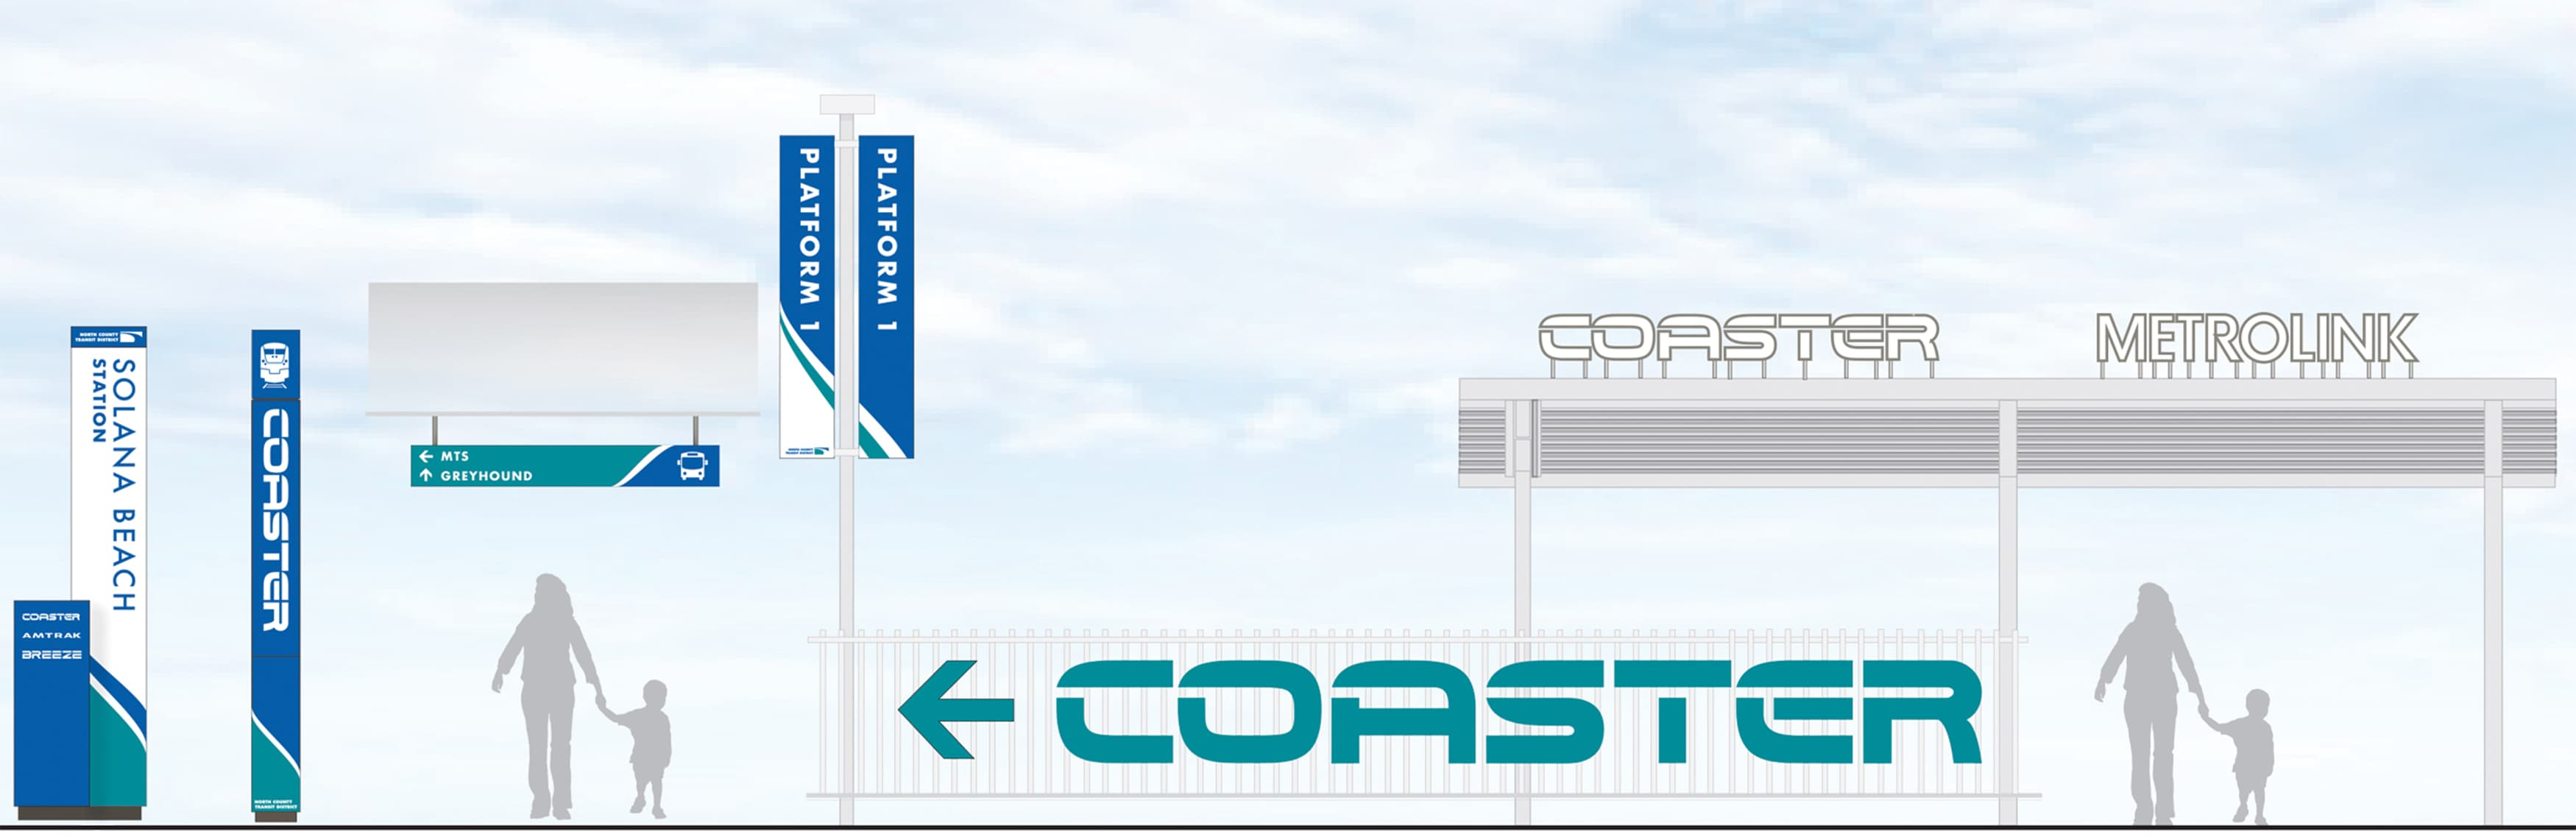 North County Transit District, the transit system in northern San Diego, California, worked with RSM Design to re-think what their transit system looks like. Light-rail wayfinding system.